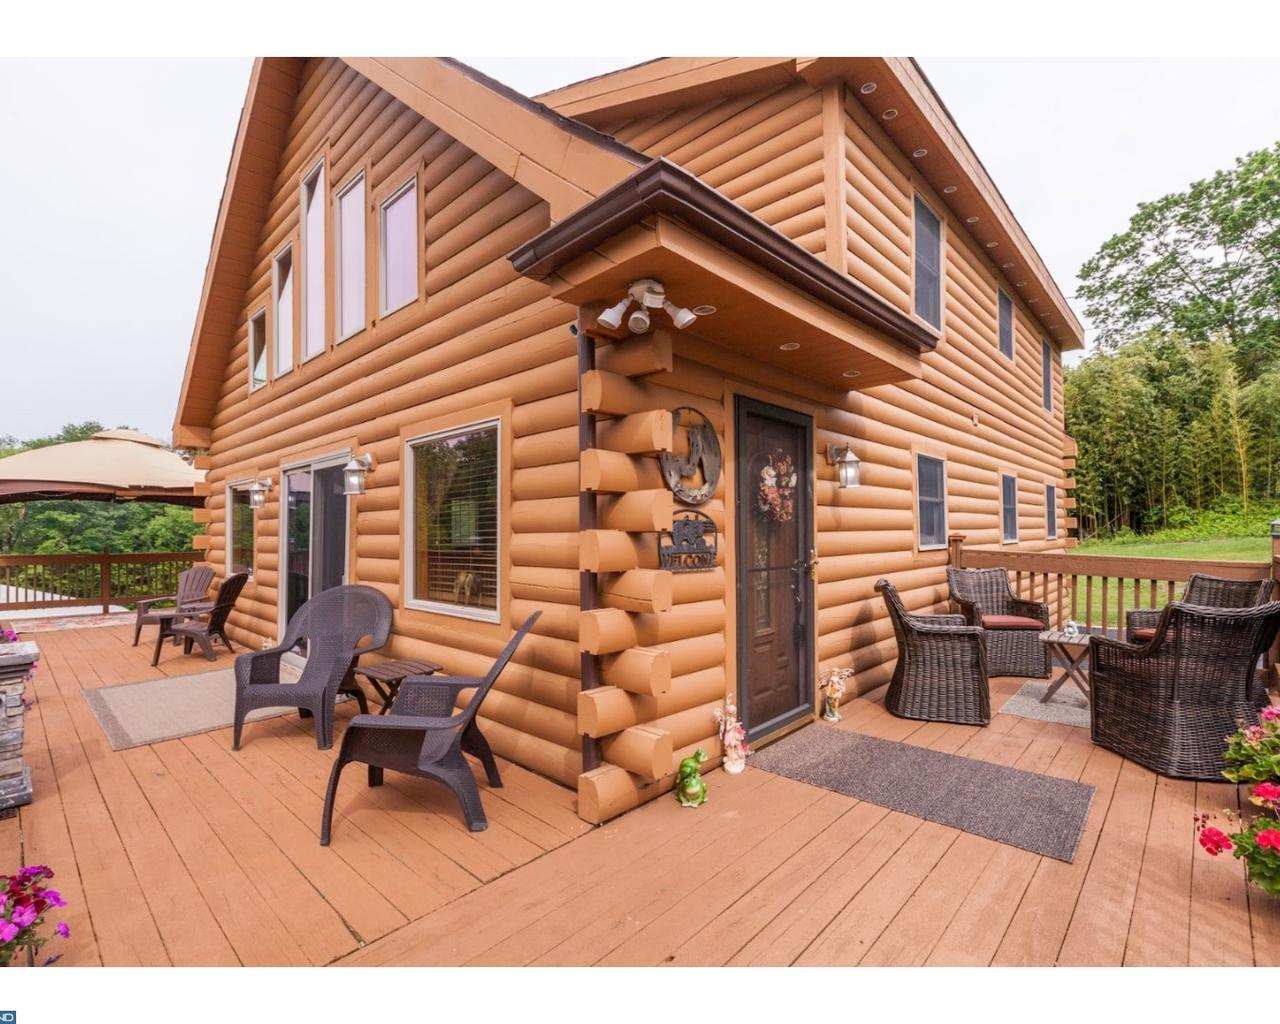 cabins cabin in perspective exterior aspen kits log min sale for homes pa conestoga